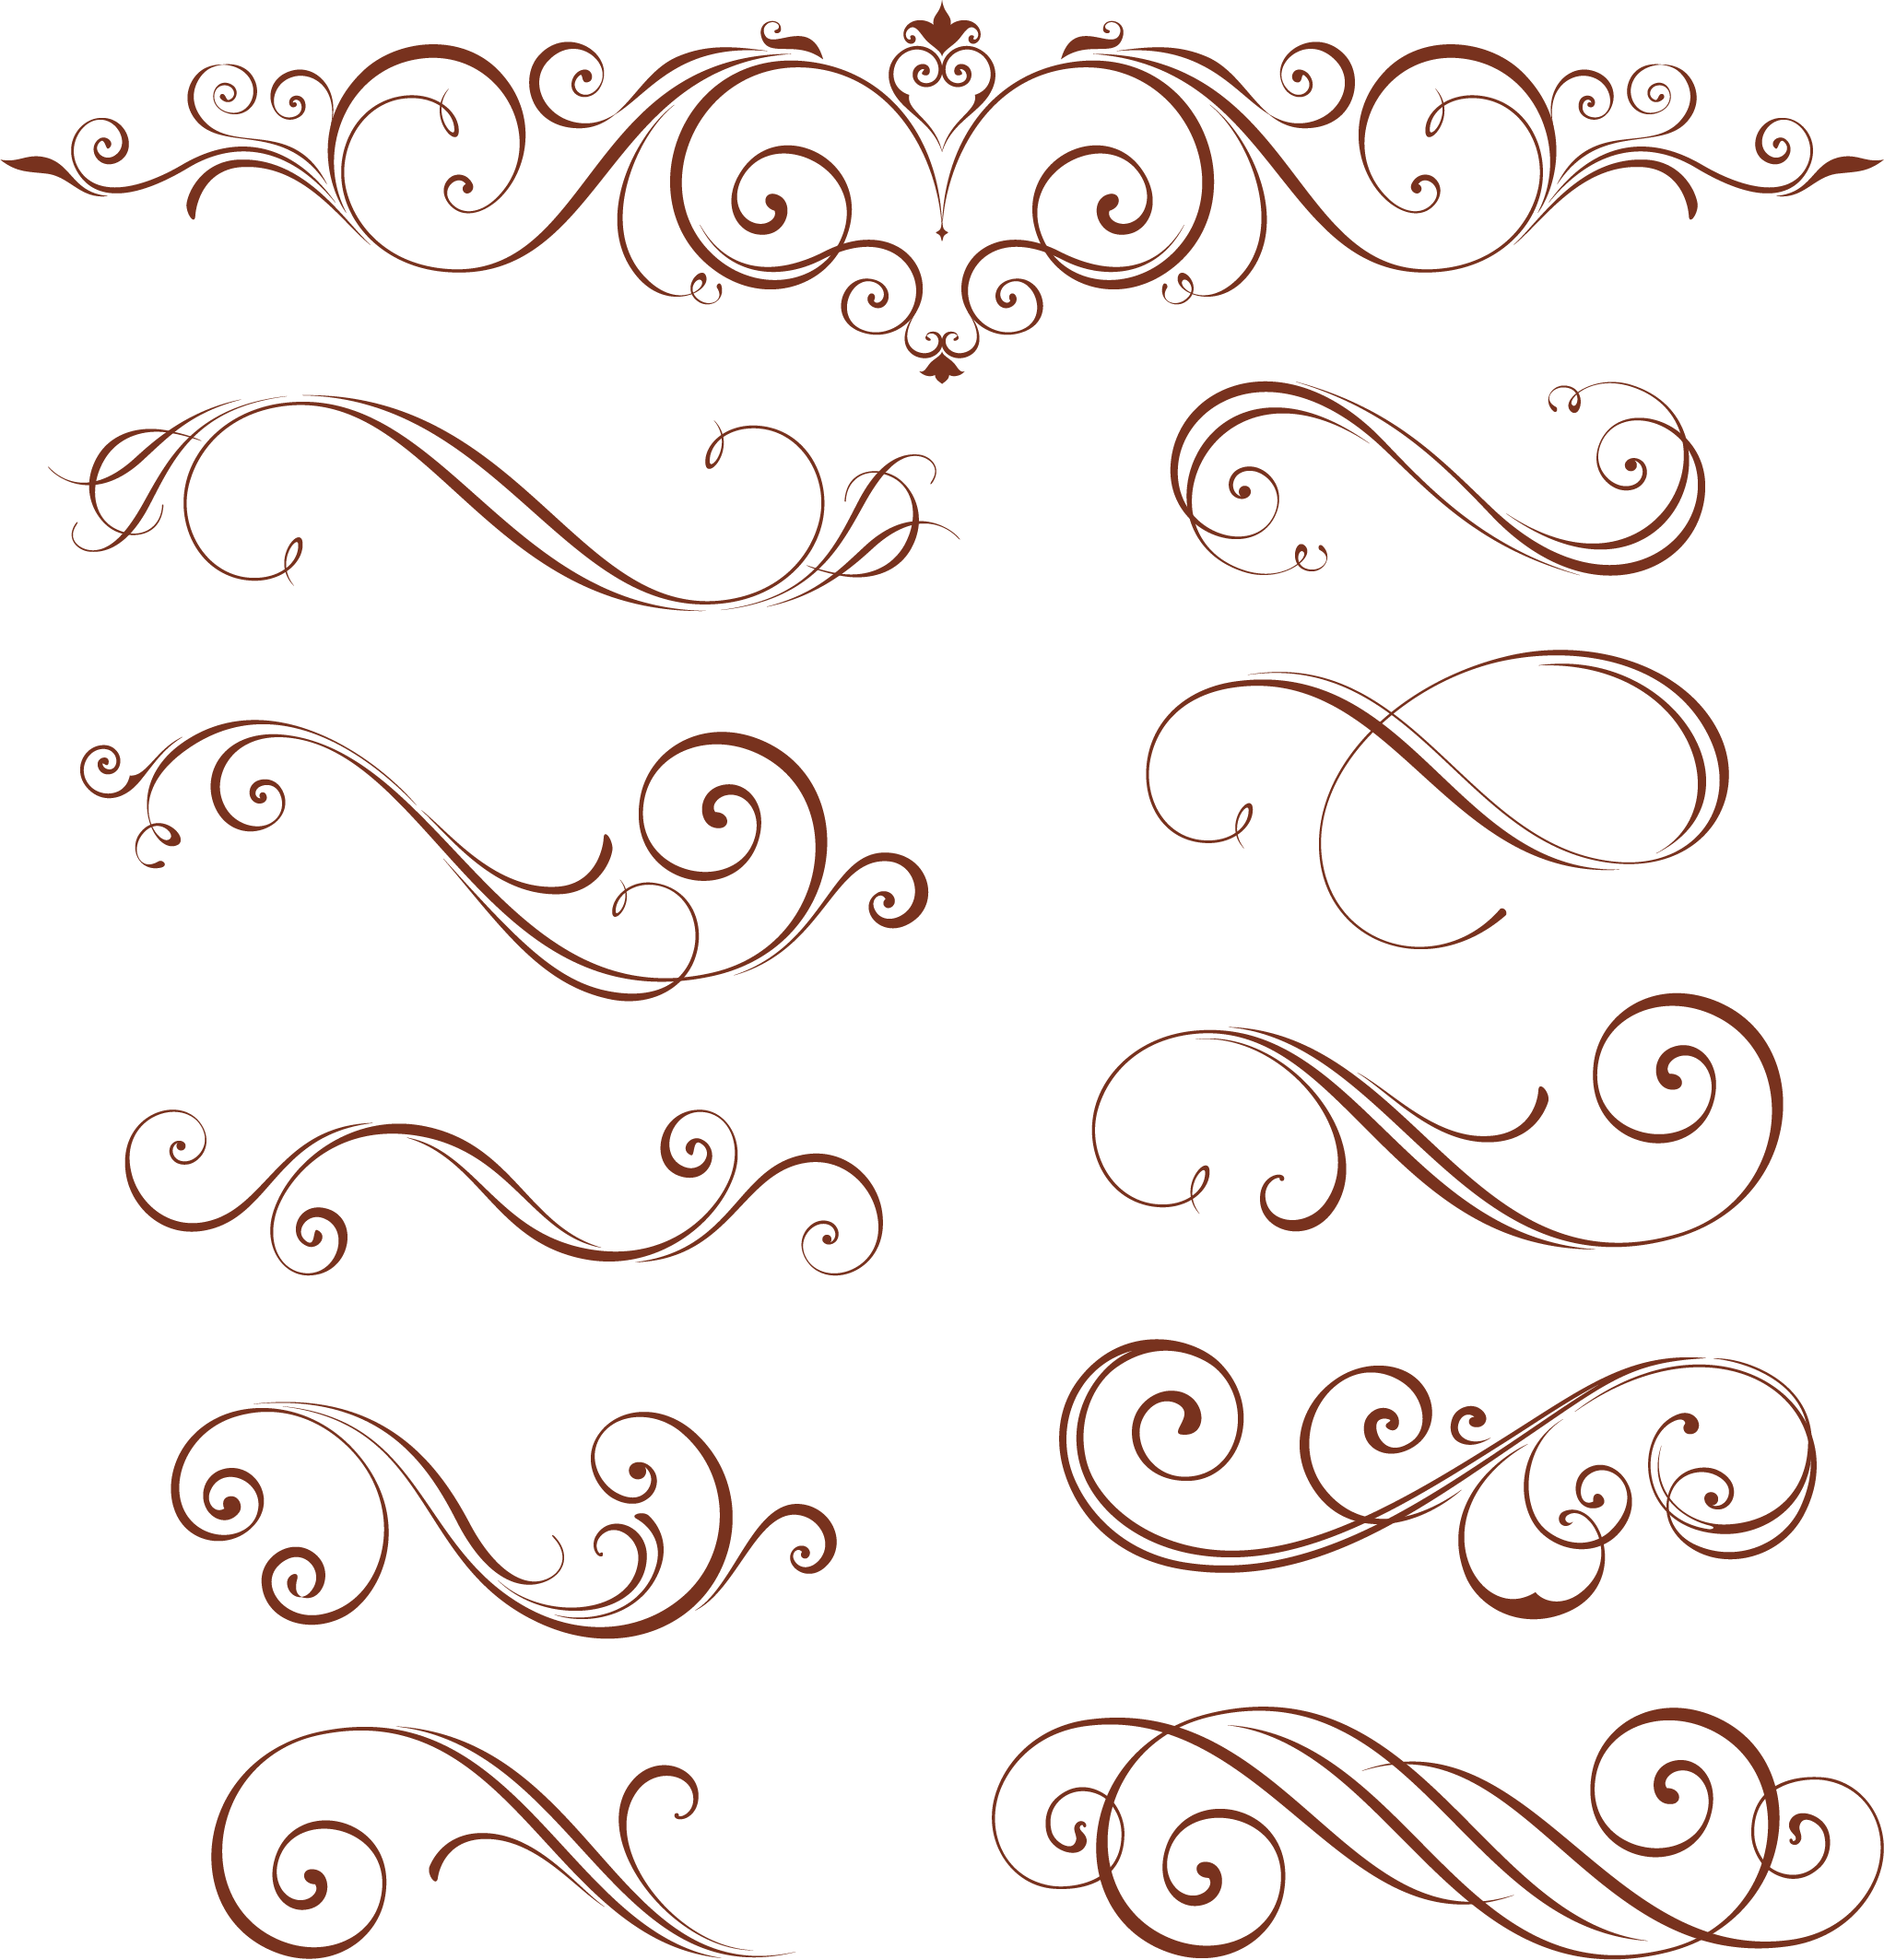 Calligraphic Design Elements For Page Decorations 3 25 Eps Svg Patterns Bundle Svg Art Png Texture Jpg Frame Eps Print Clipart In 2021 Page Decoration Swirl Design Pattern Flower Coloring Pages